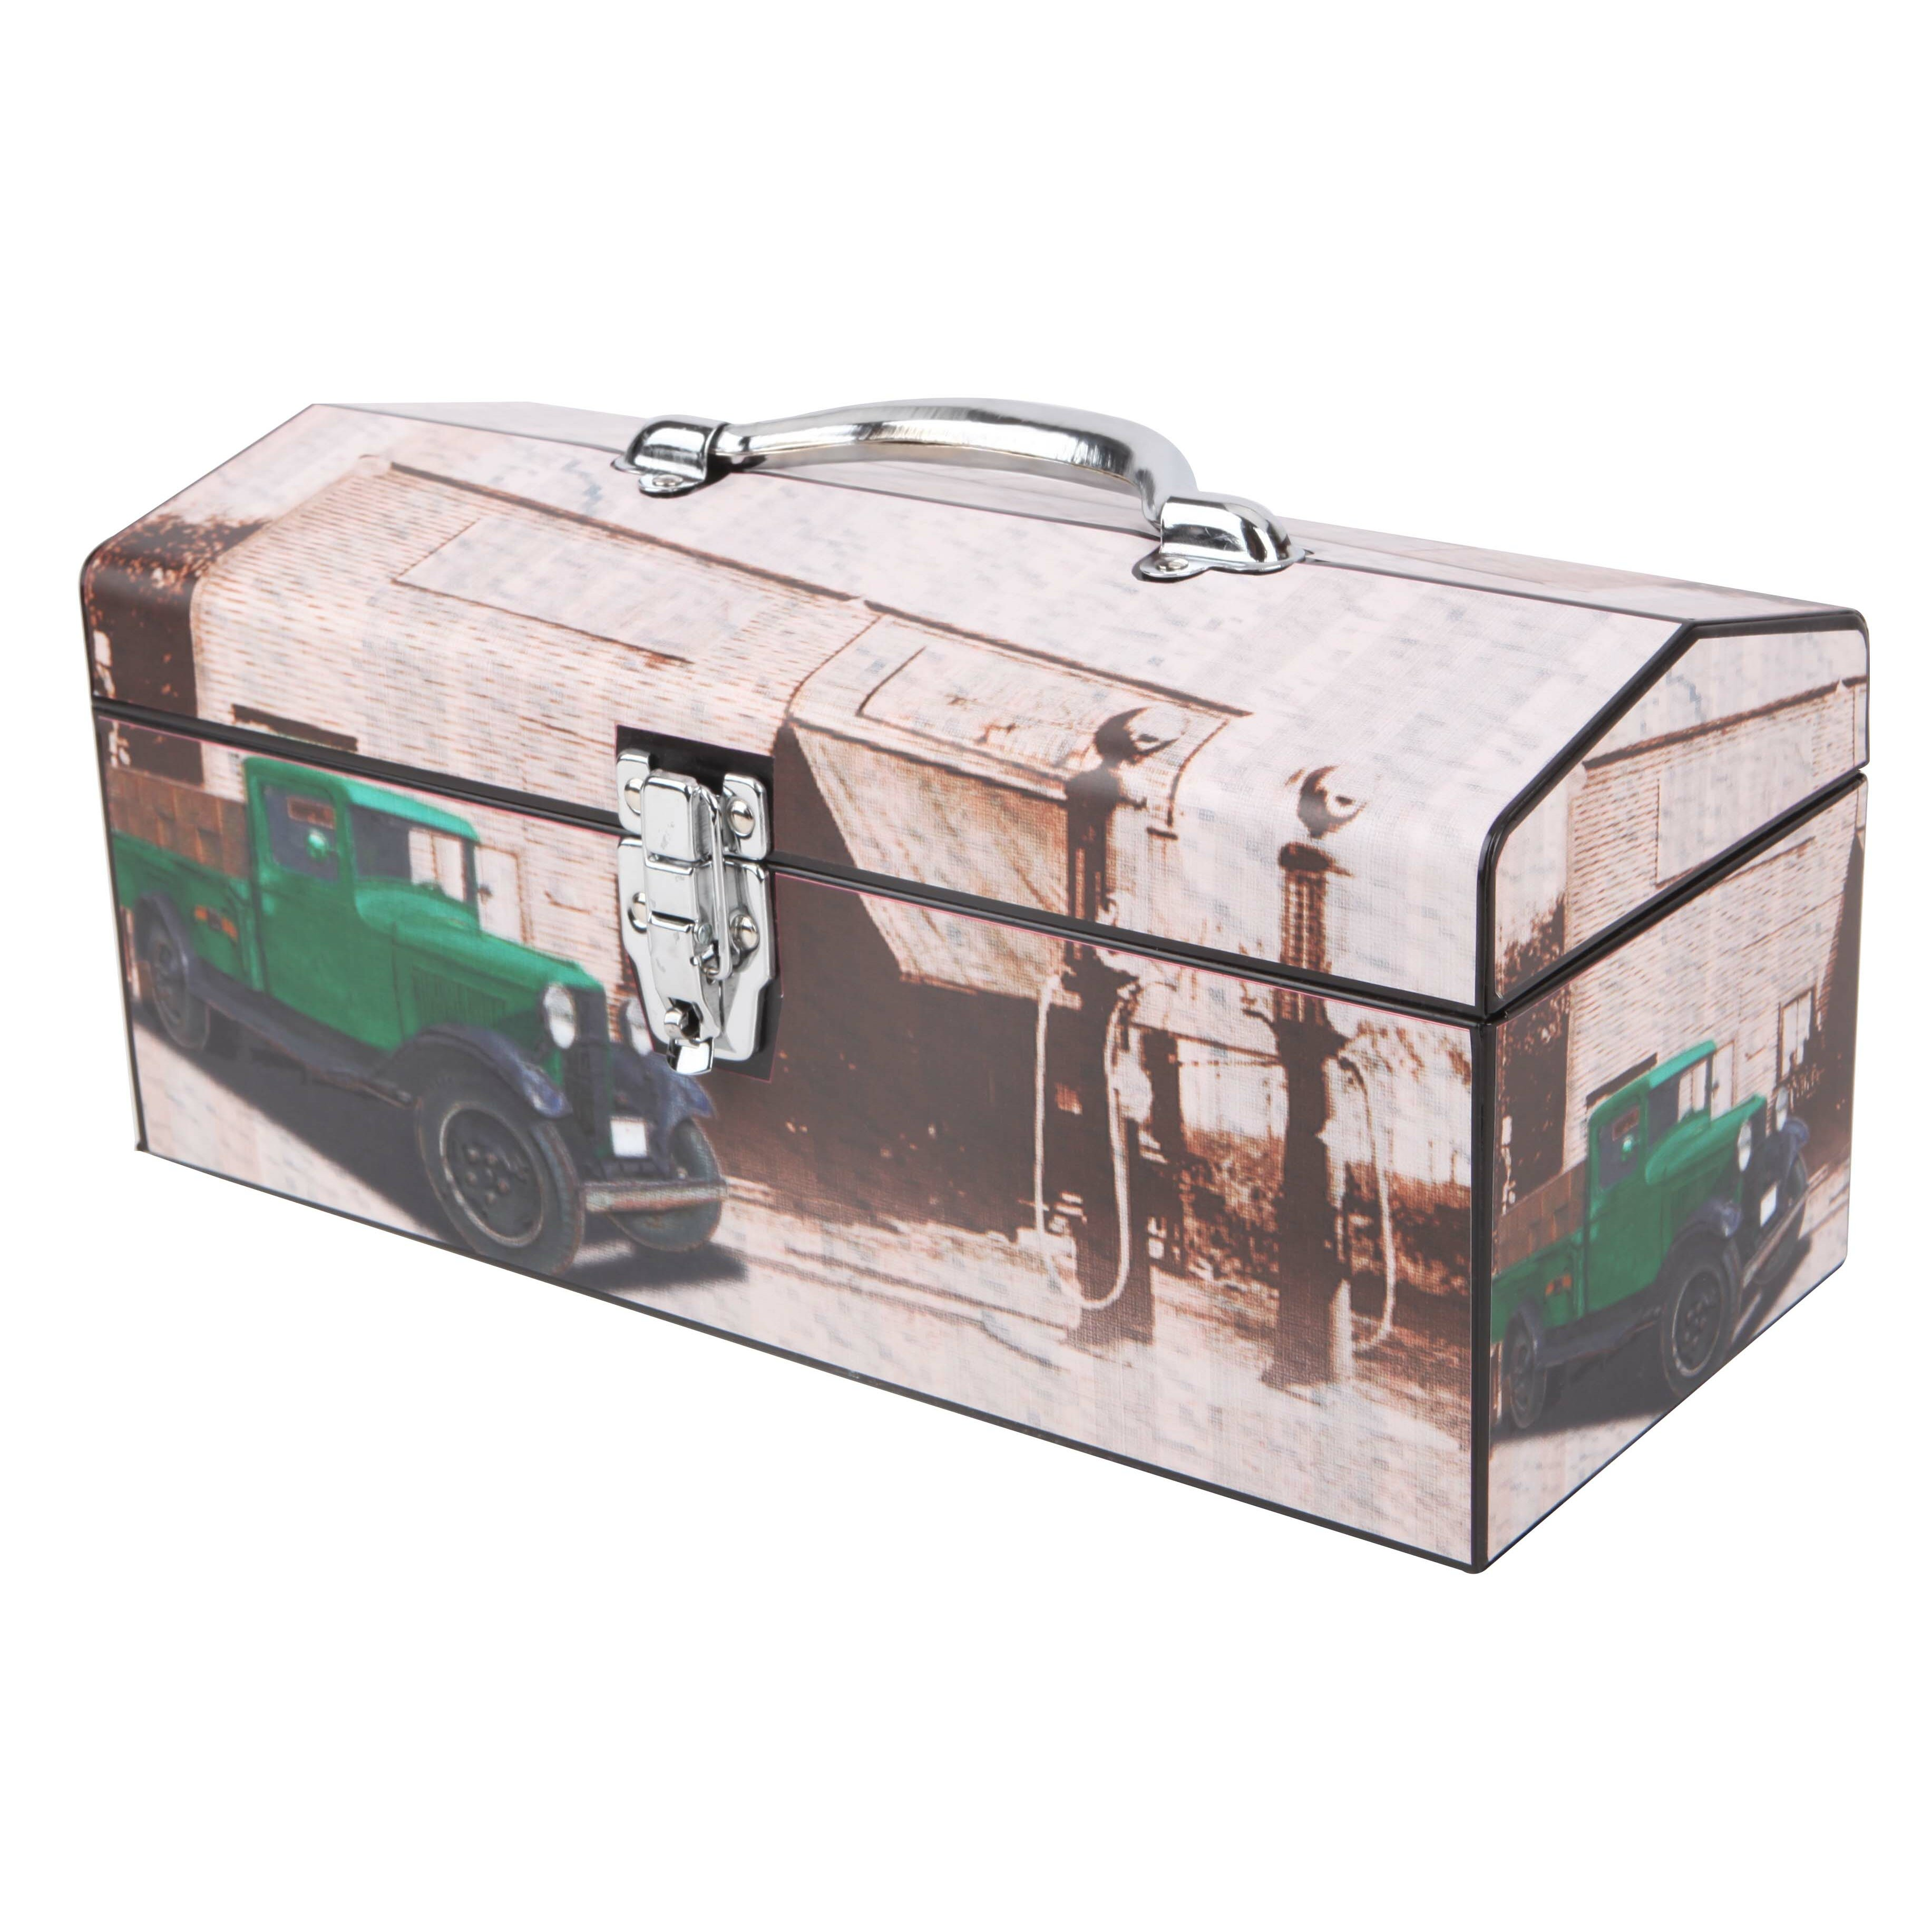 Knaack Portable Tool Box Bush 7 Inch Portable Dvd Player Manual Portable Hd Fm Radio Player Hape Portable Easel: Vintage Truck Toolbox